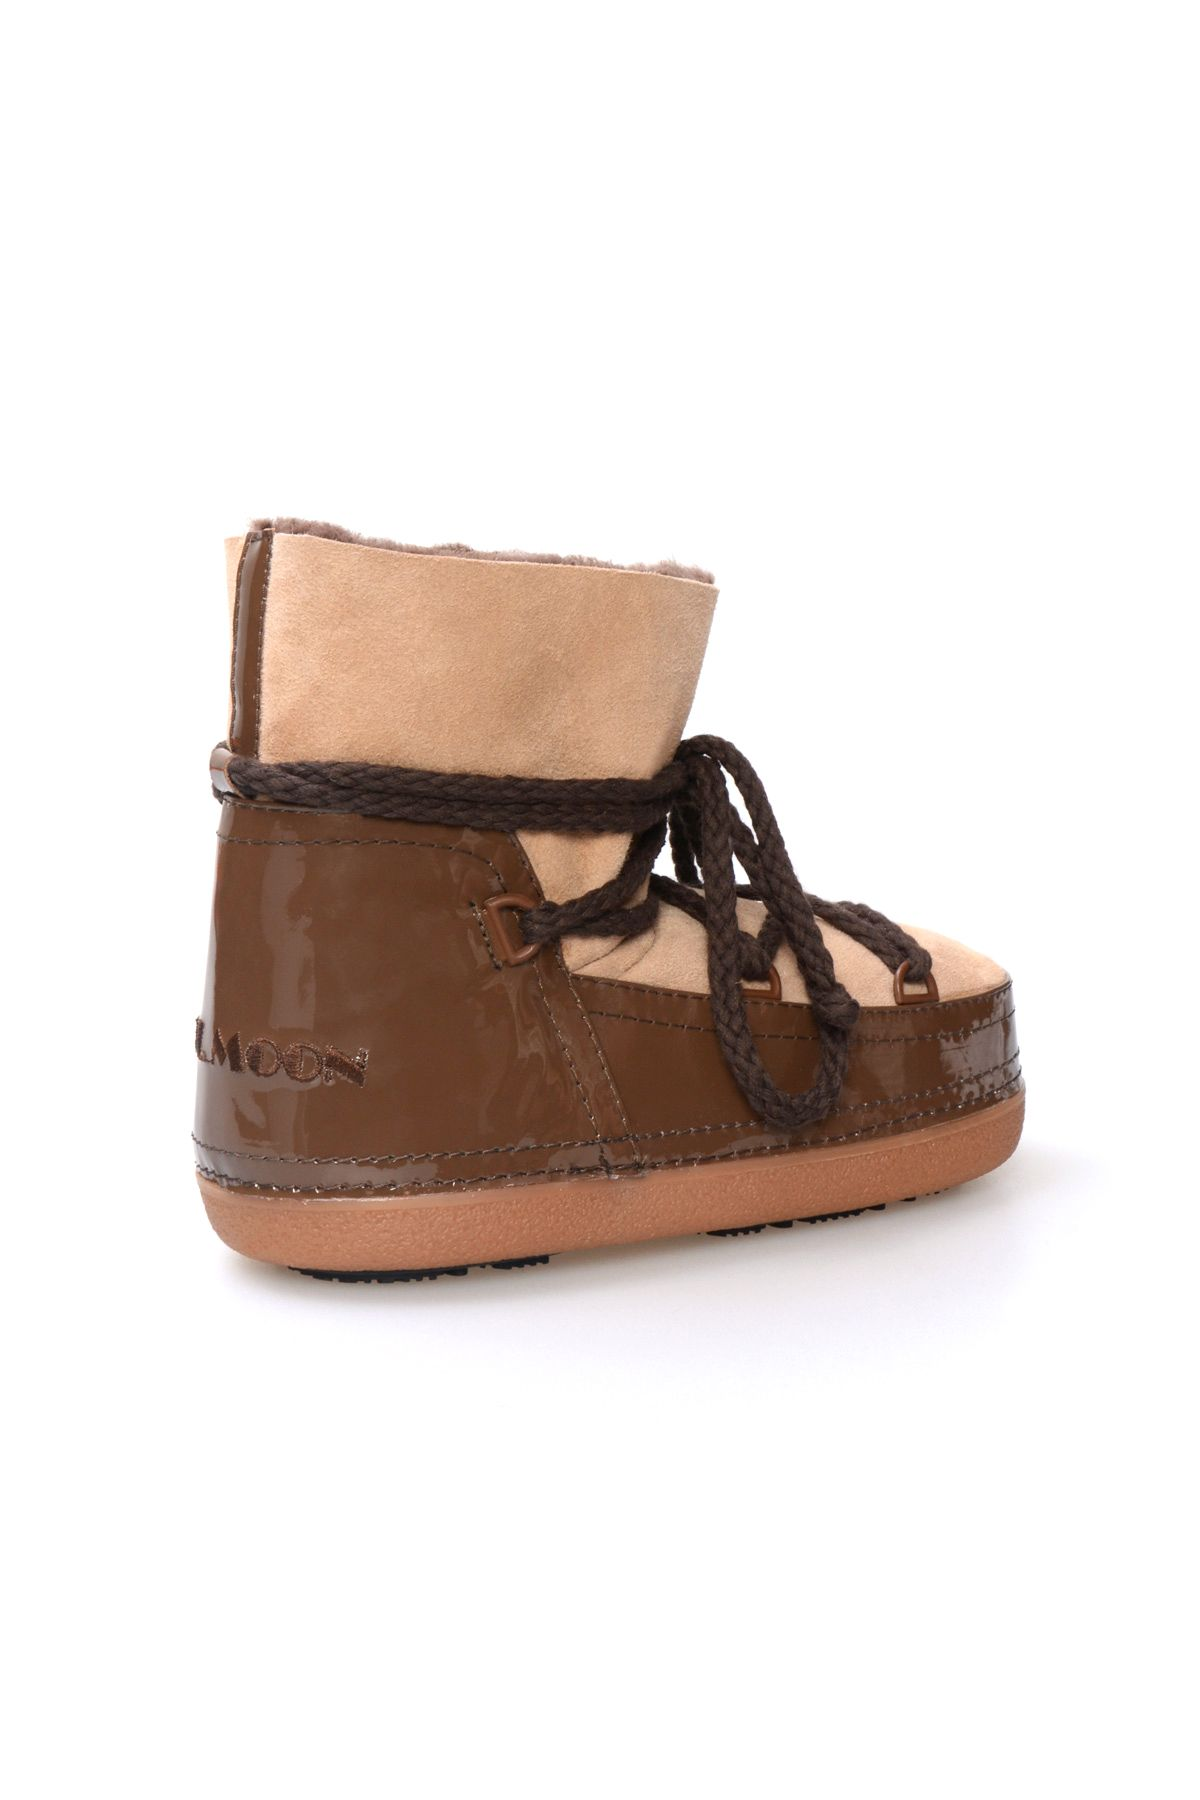 Cool Moon Women's Shearling Snow Boots 259002 Brown